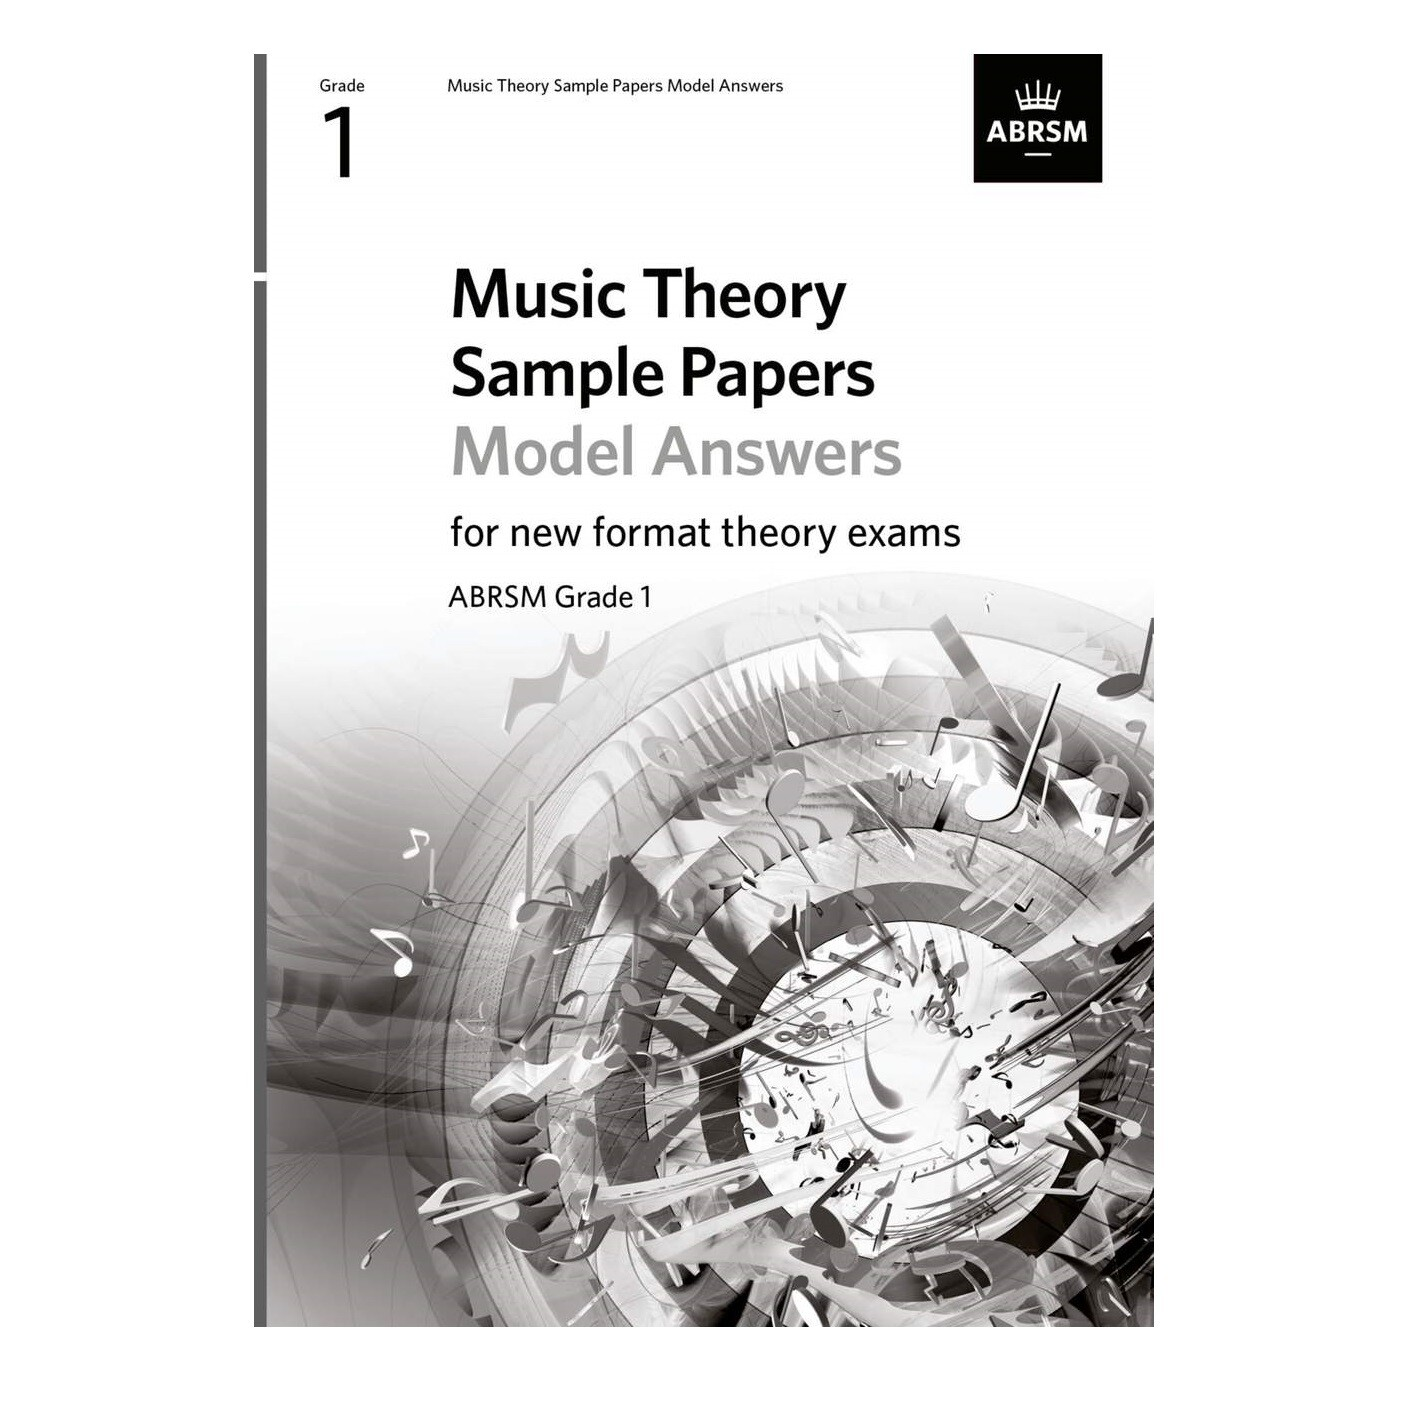 ABRSM Music Theory Sample Papers Model Answers (new 2020 format) - Grade 1